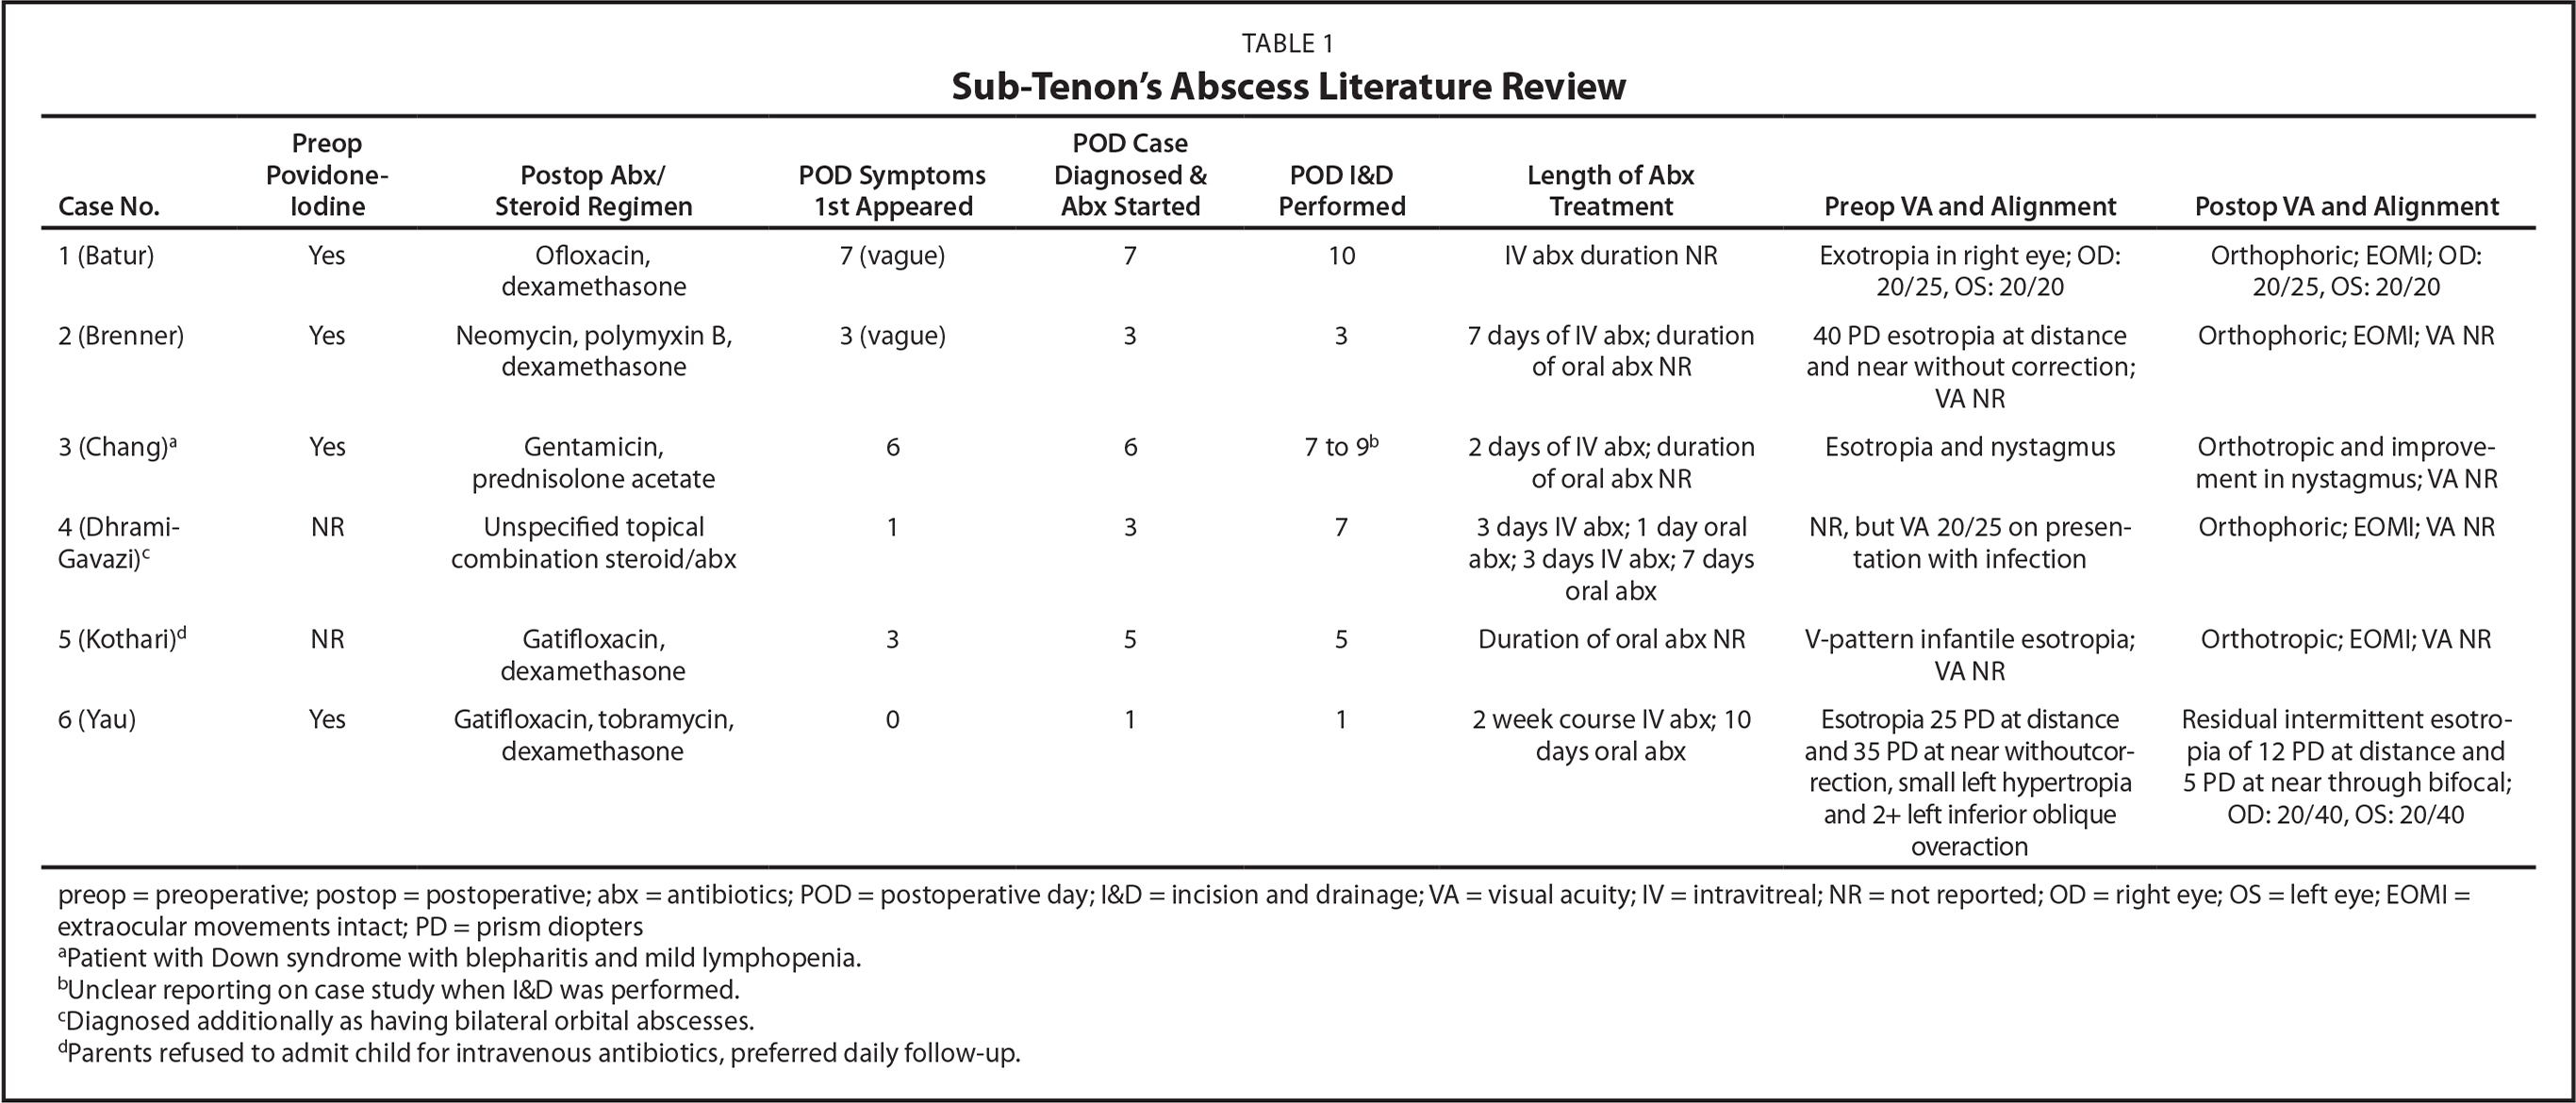 Sub-Tenon's Abscess Literature Review